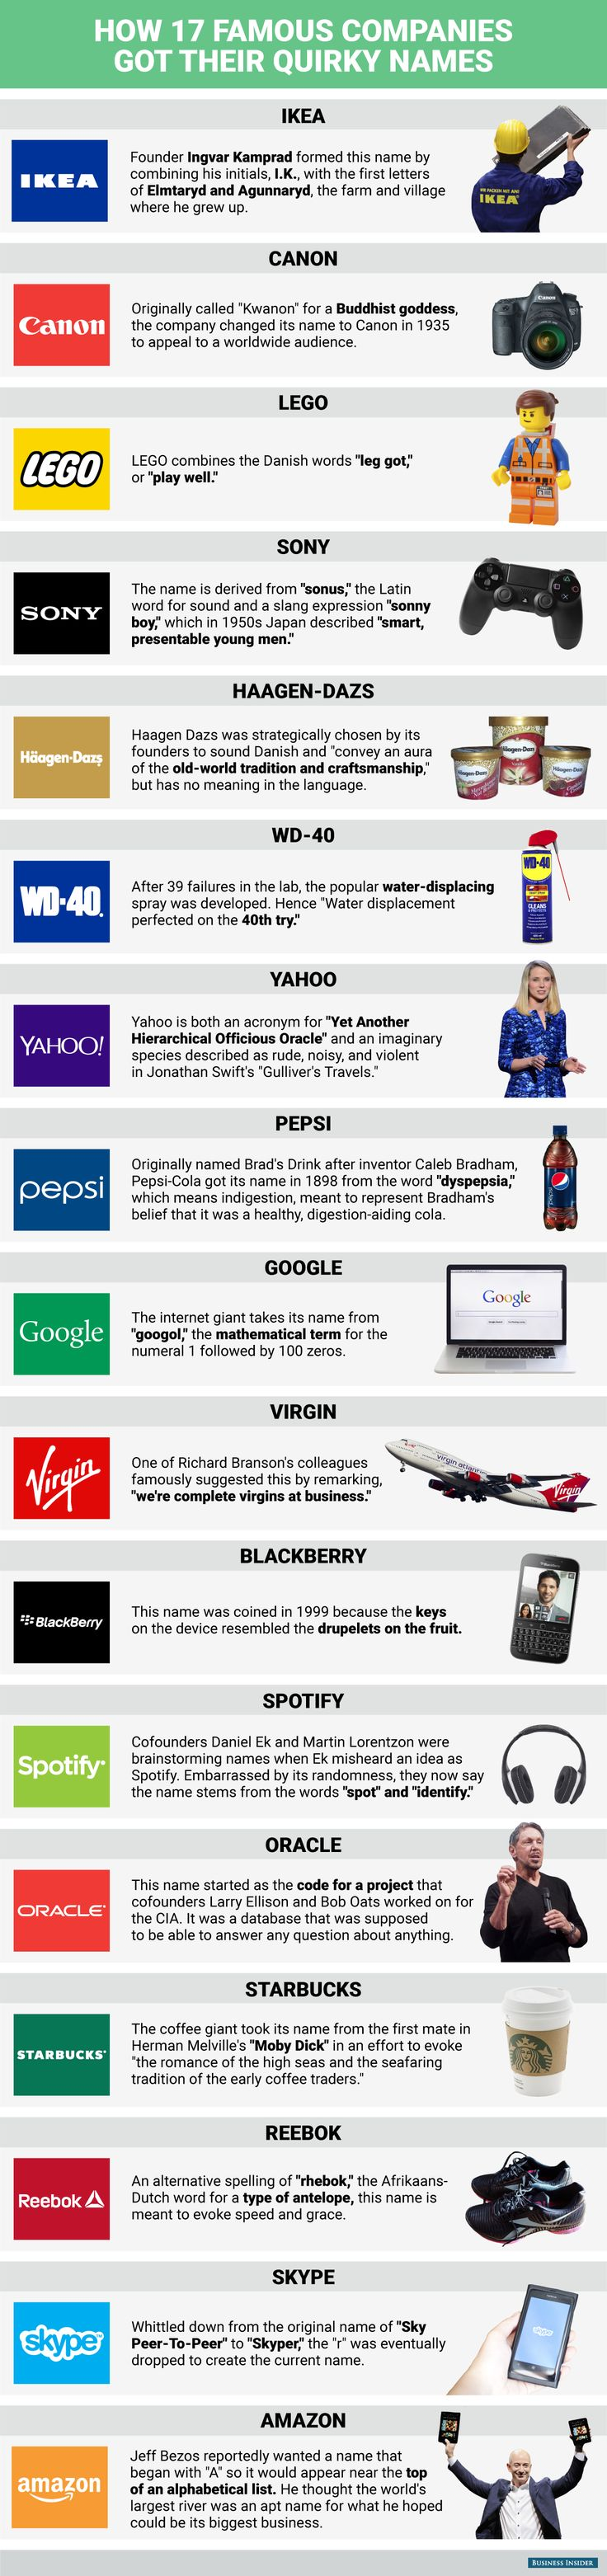 How 17 famous companies got their quirky names.